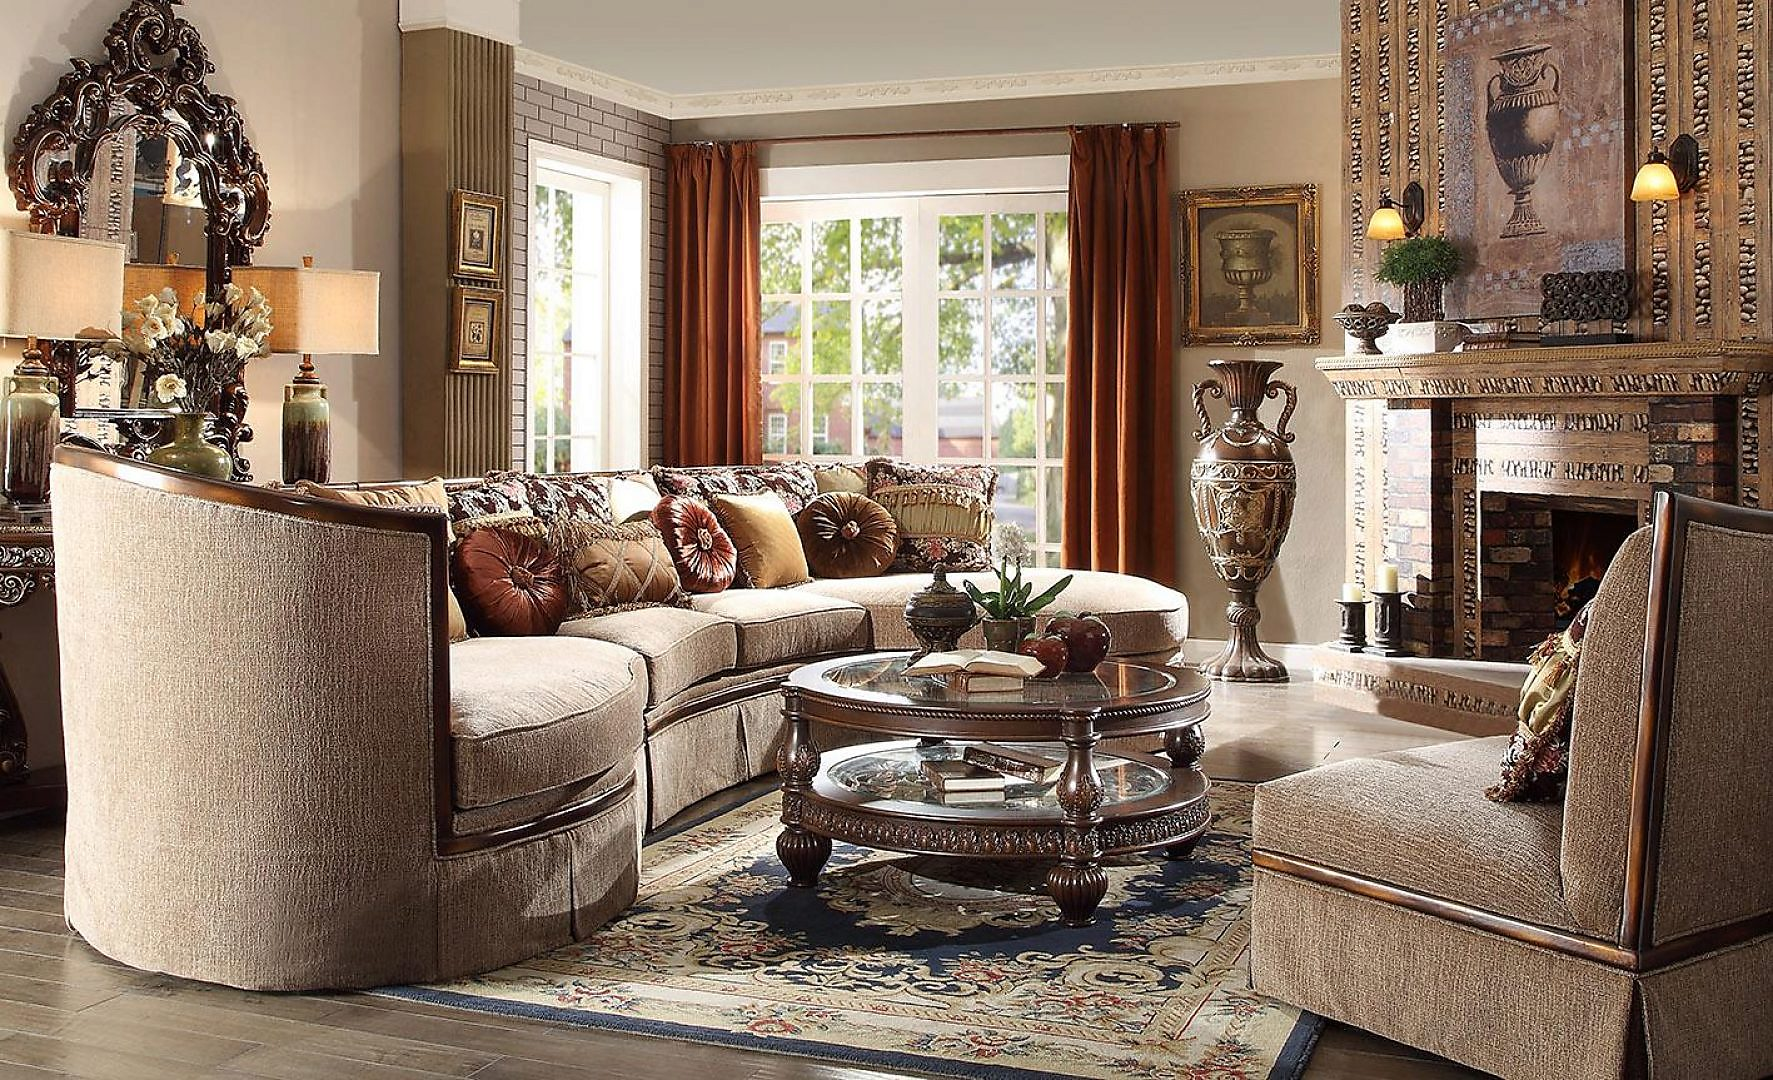 Traditional HD-1627 Sectional Sofa Set 5Pcs by Homey Design